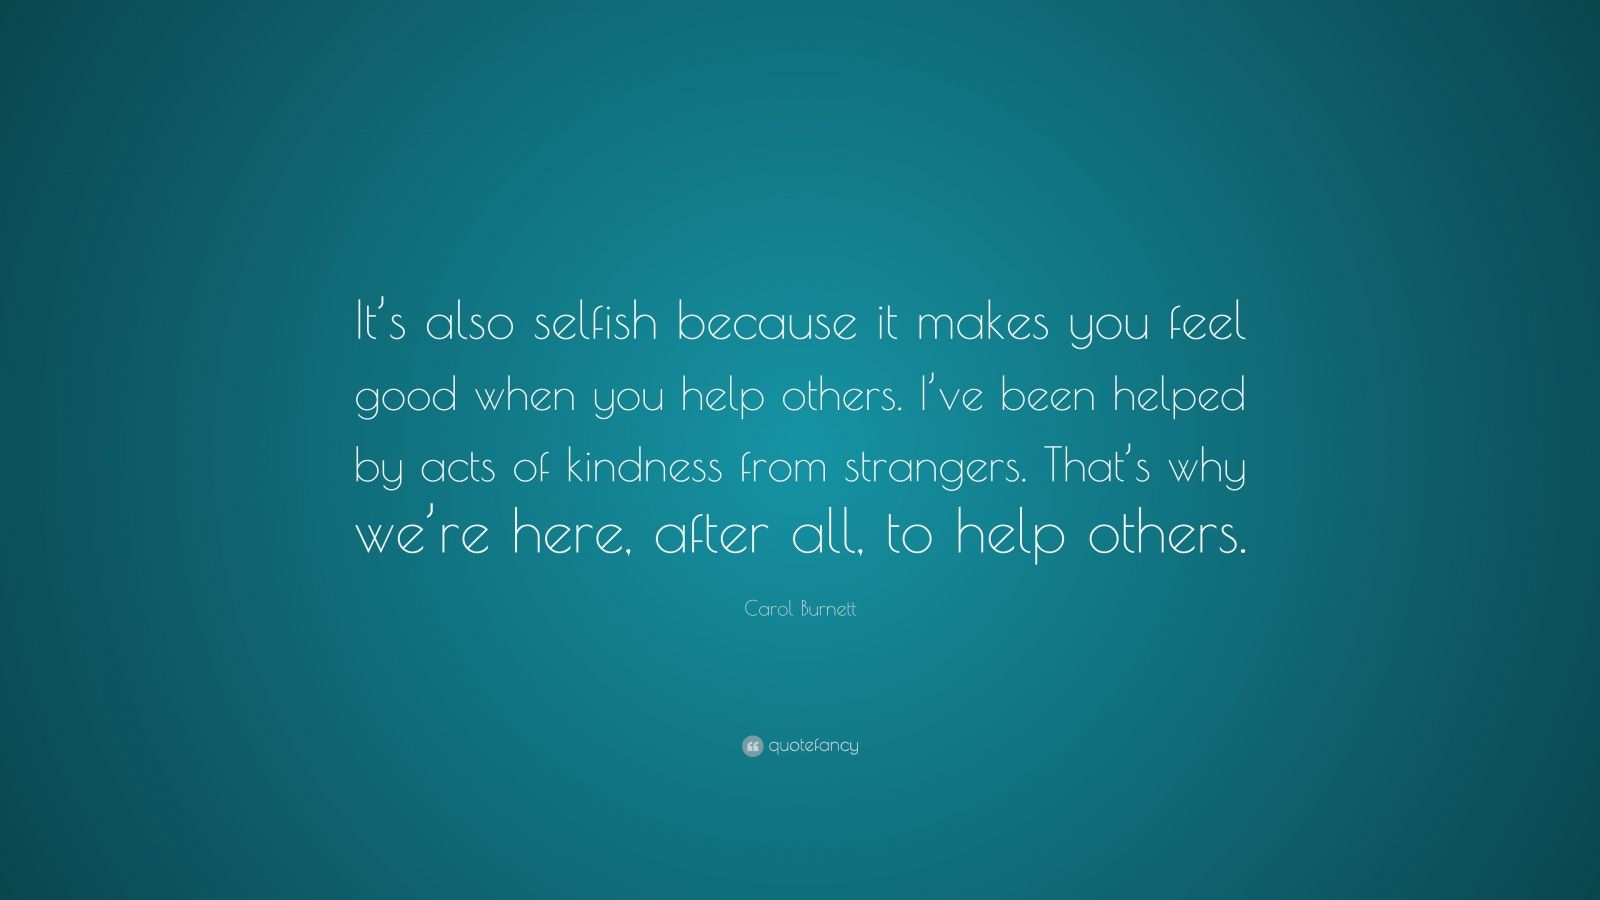 """Carol Burnett Quote: """"It's also selfish because it makes you feel good when you help others. I've been helped by acts of kindness from strangers. That's why we're here, after all, to help others."""""""